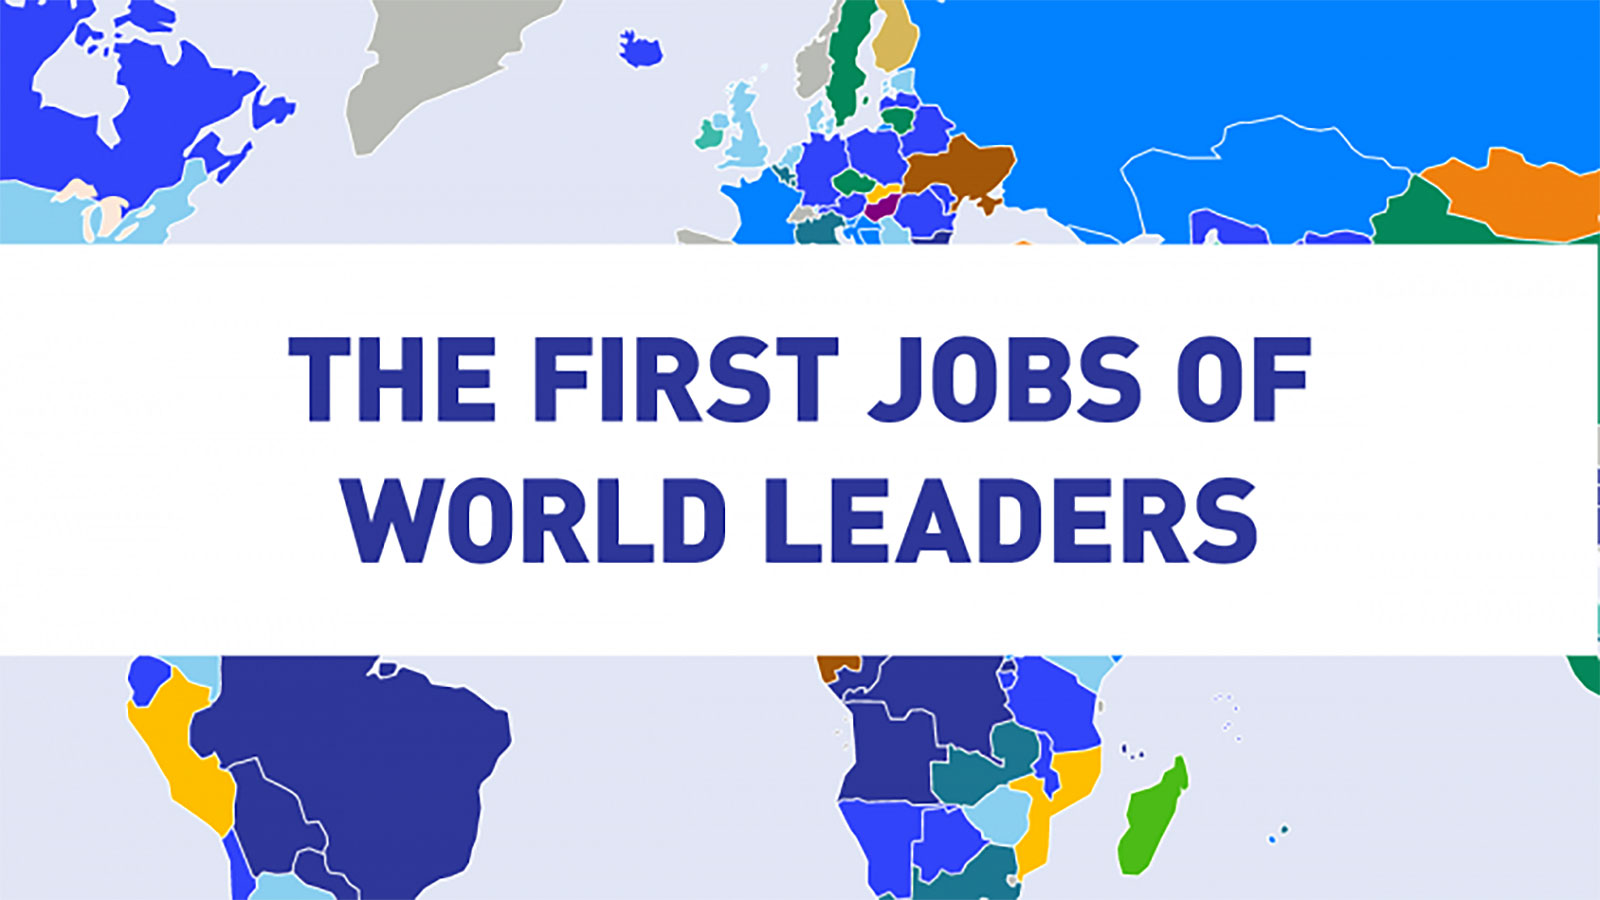 The first jobs of world leaders